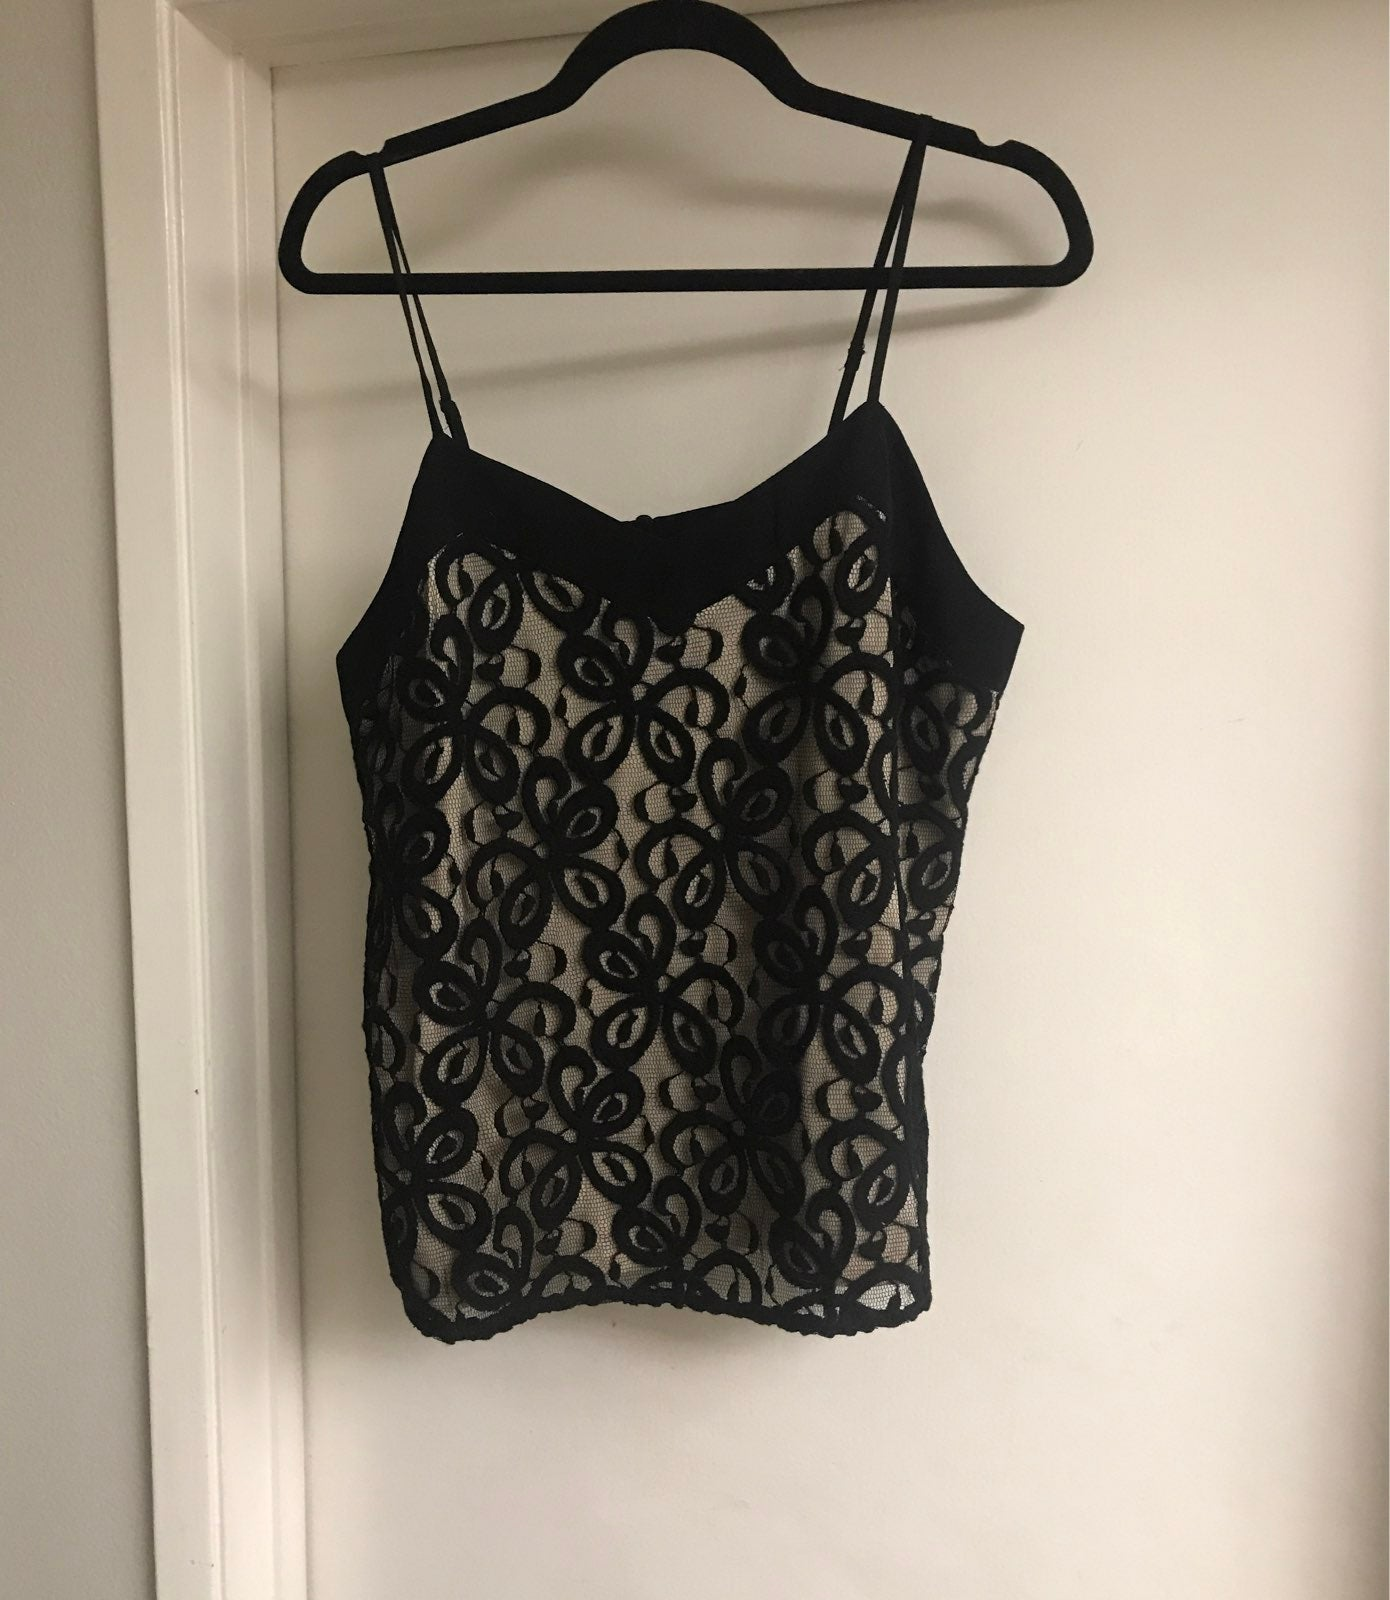 NWOT~Black & Nude Lace Lined Cami Top L